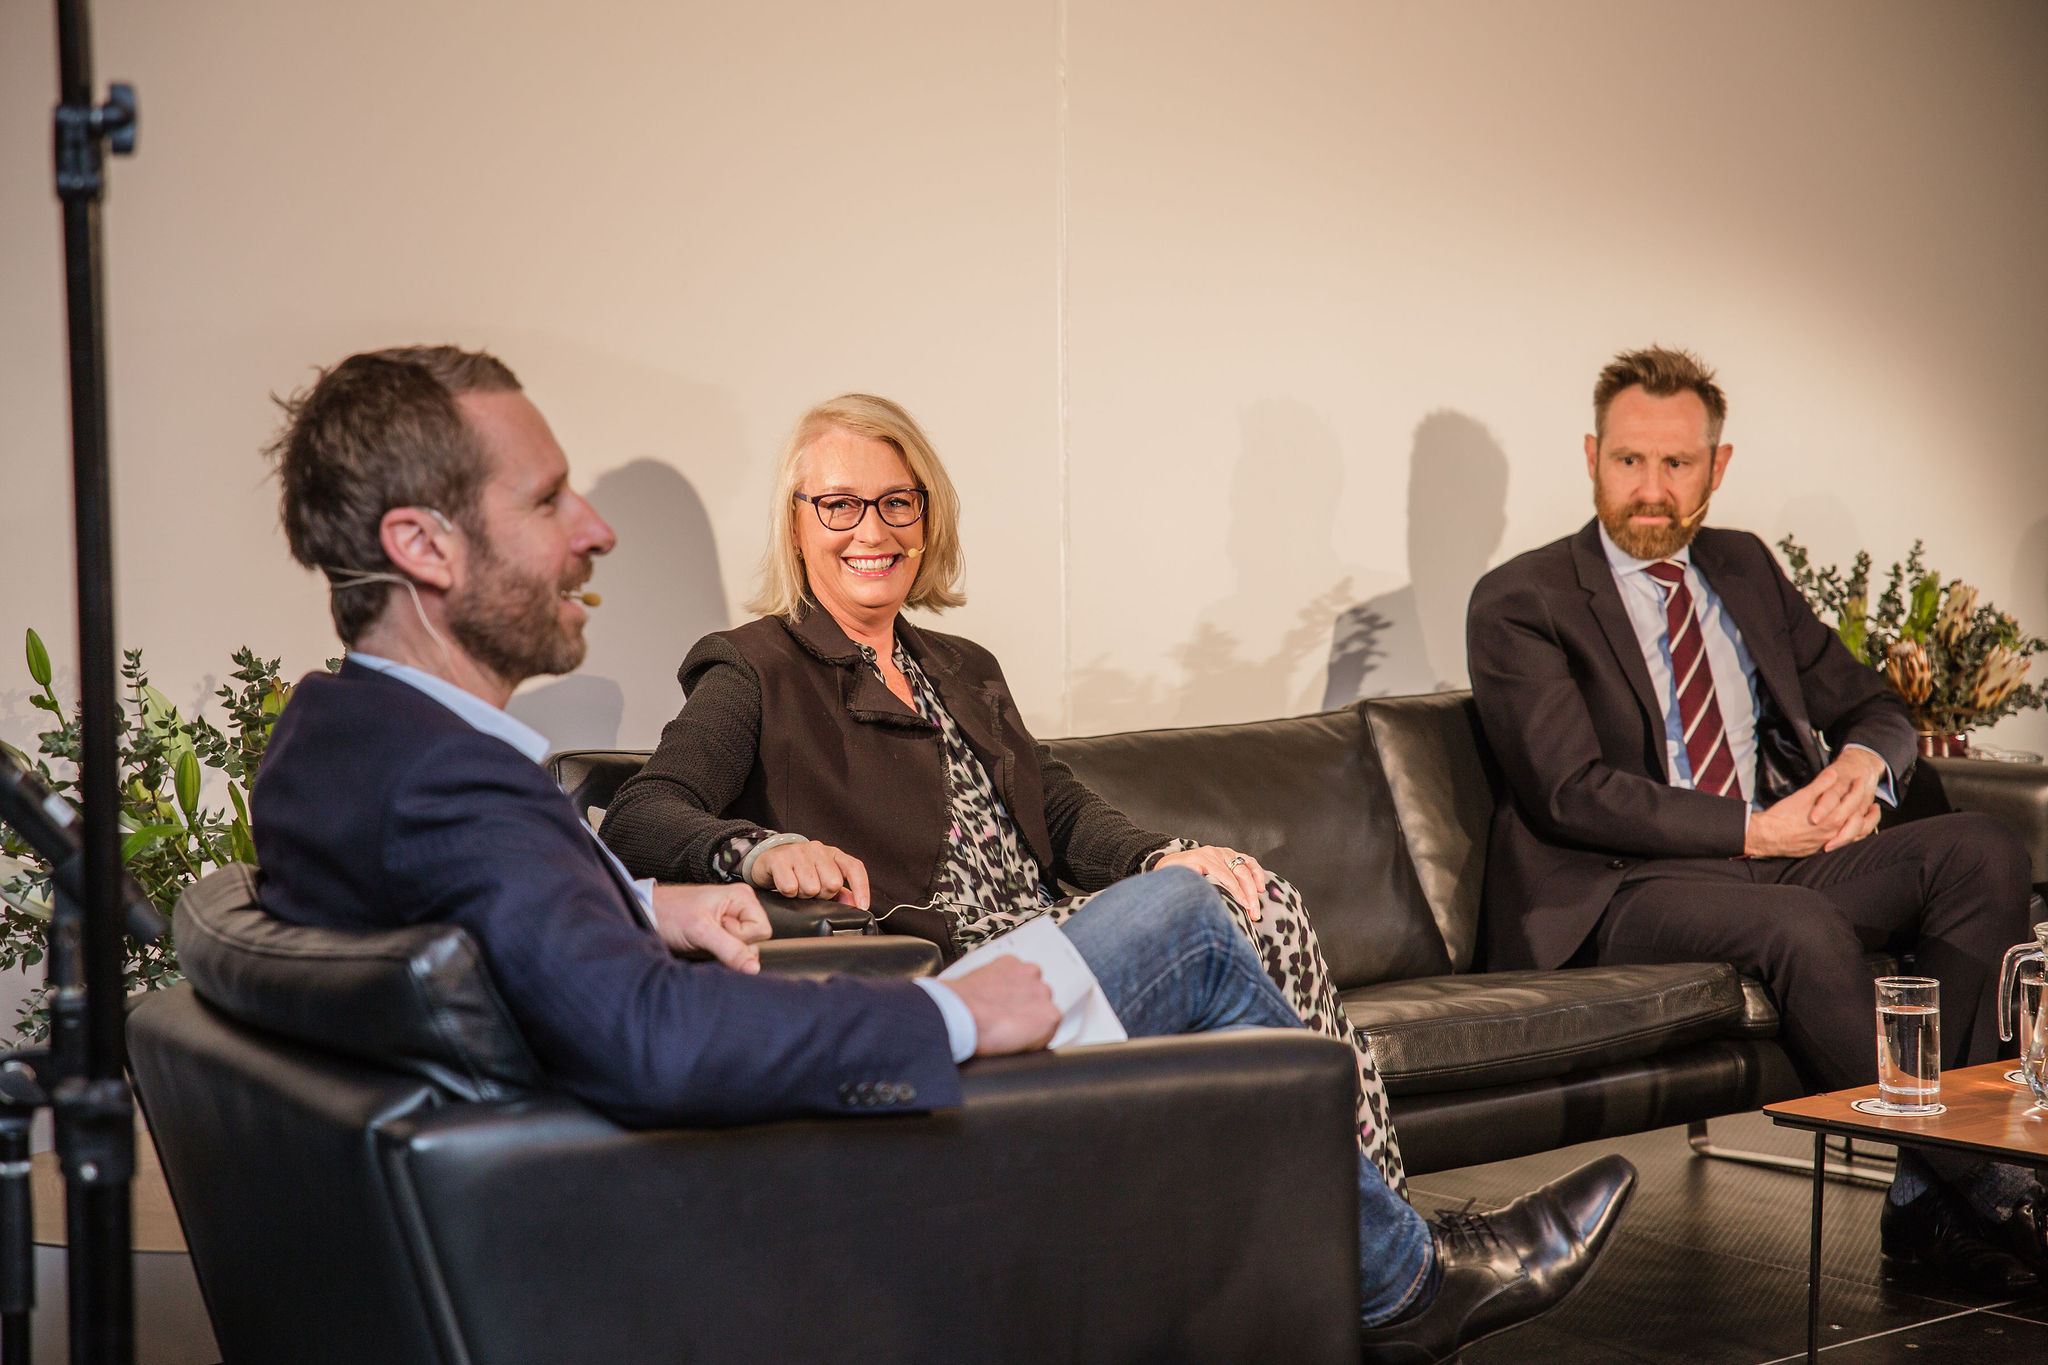 content-smith-unscripted-fireside-melbourne-capp-howcroft-read-donnelly45.jpg